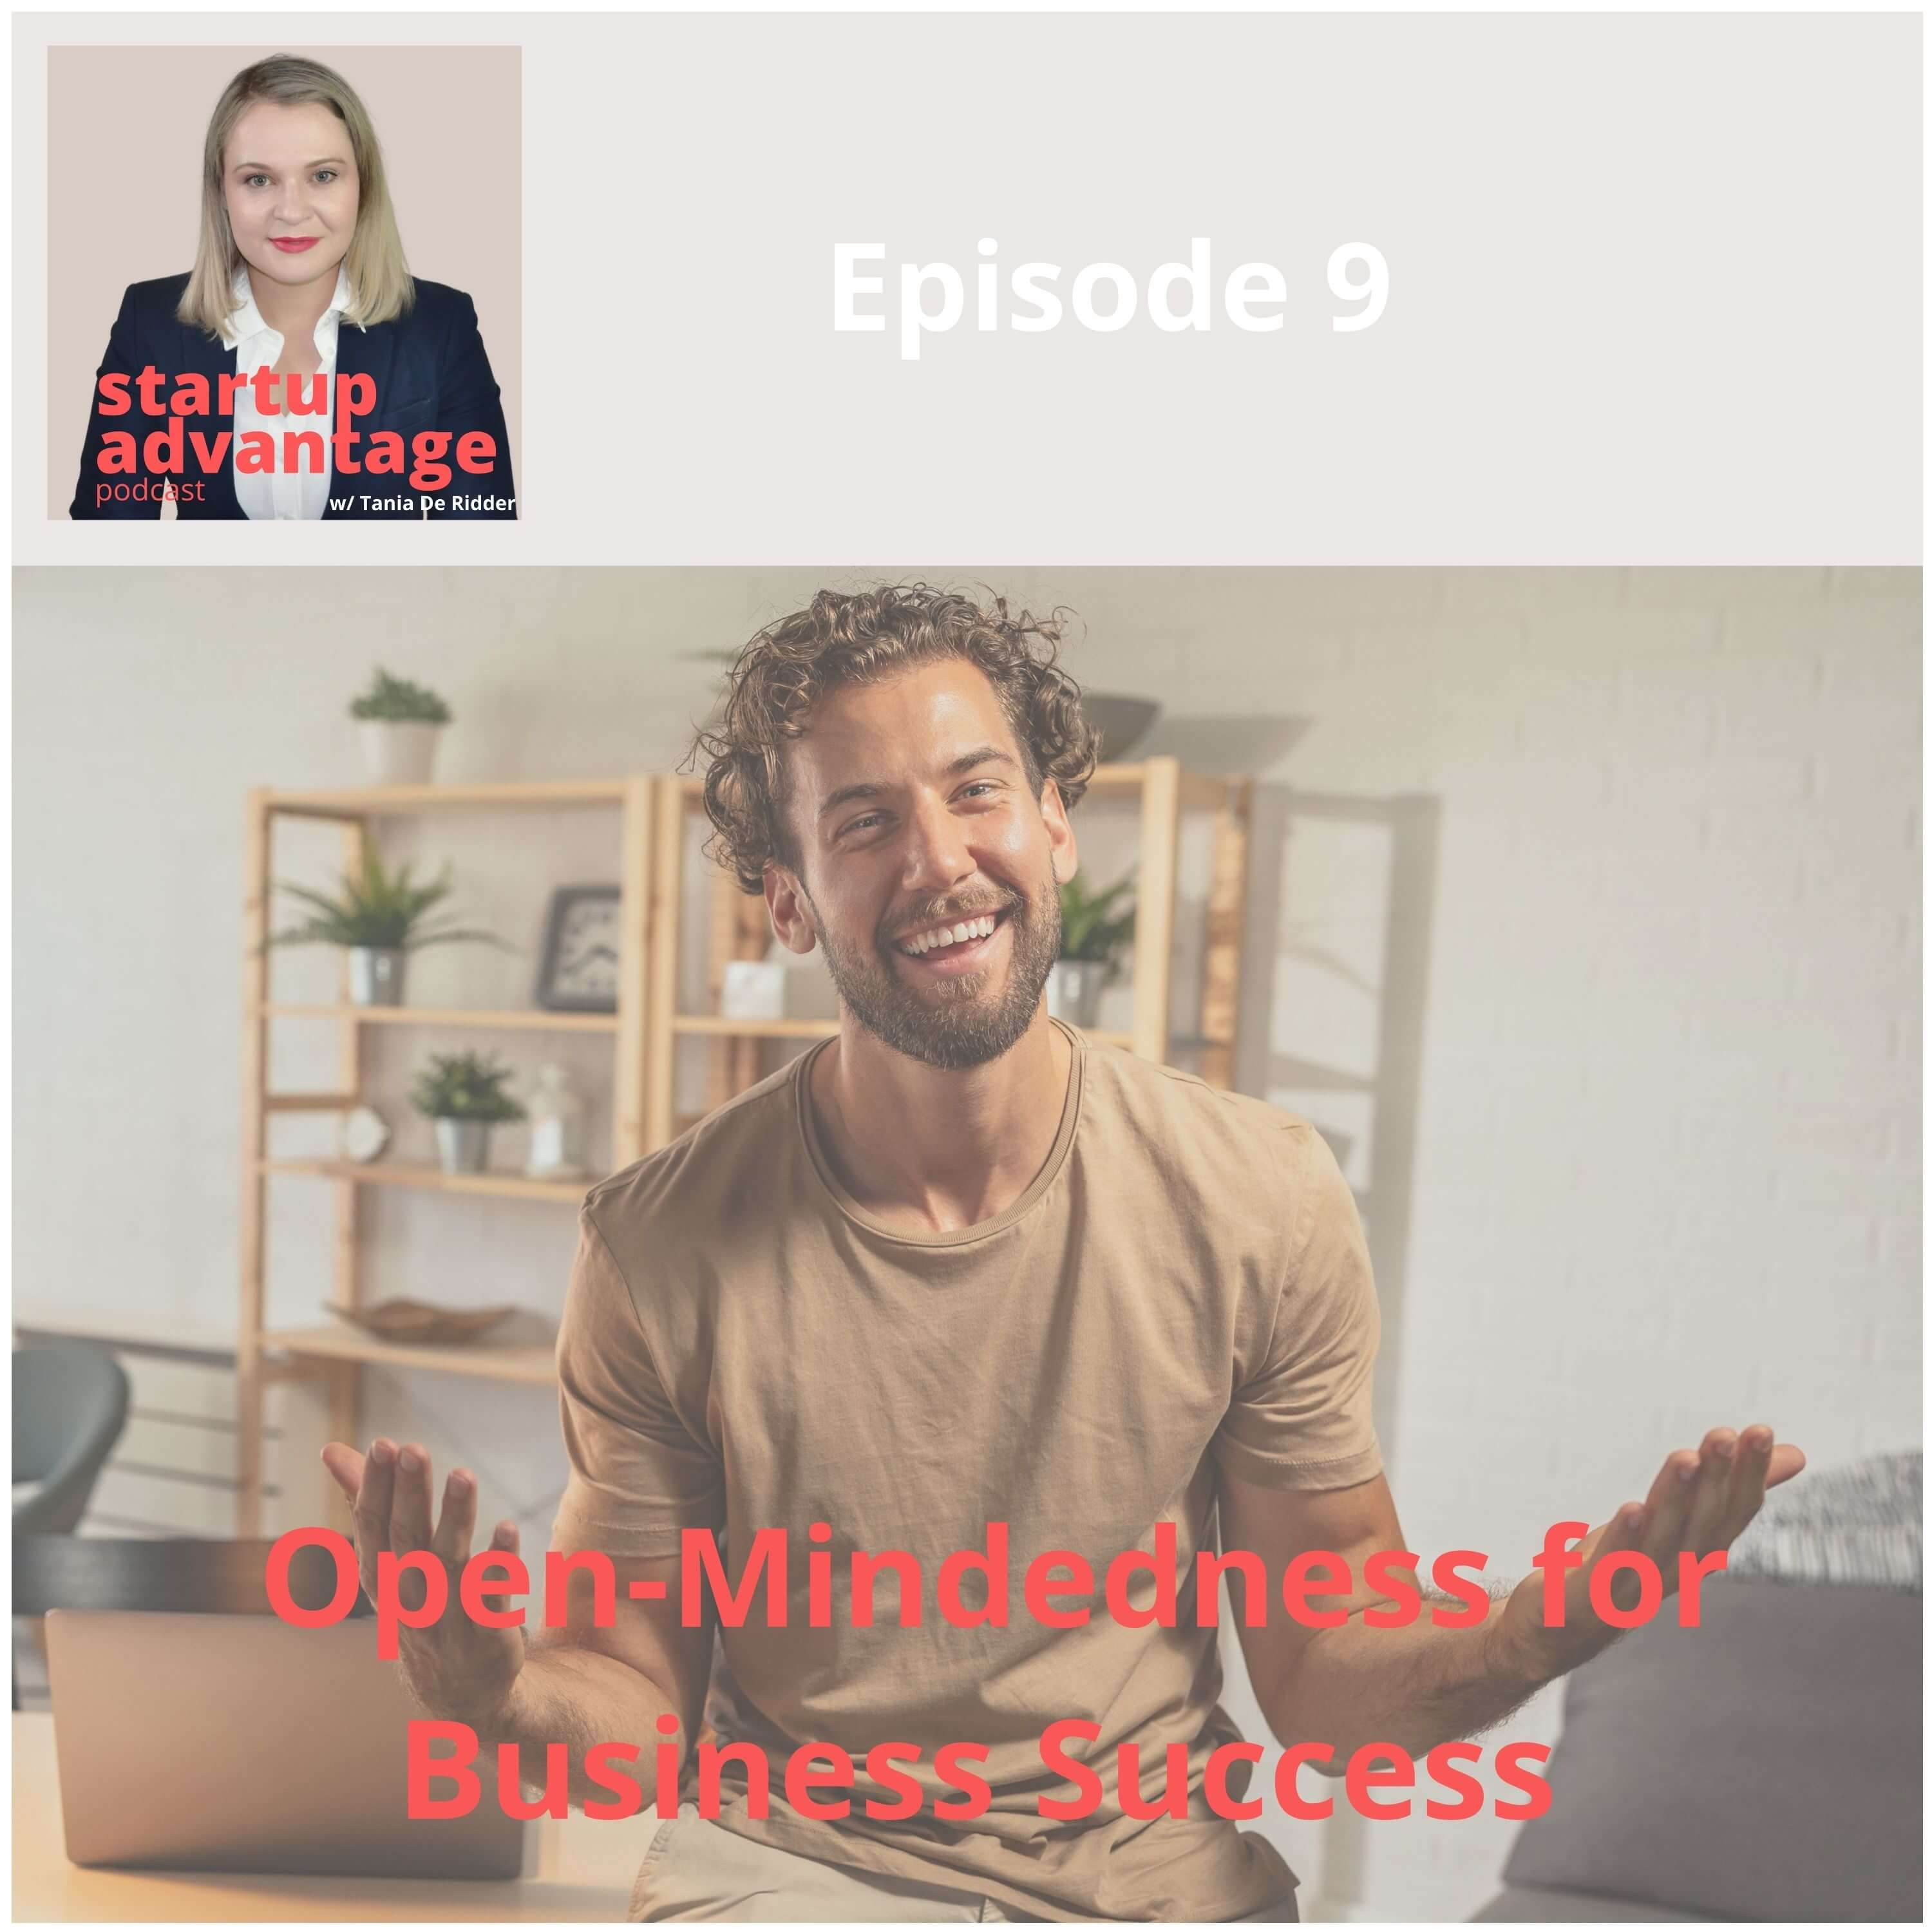 Successful Entrepreneurs are Open-Minded & How You Can Be Too With a Simple Strategy